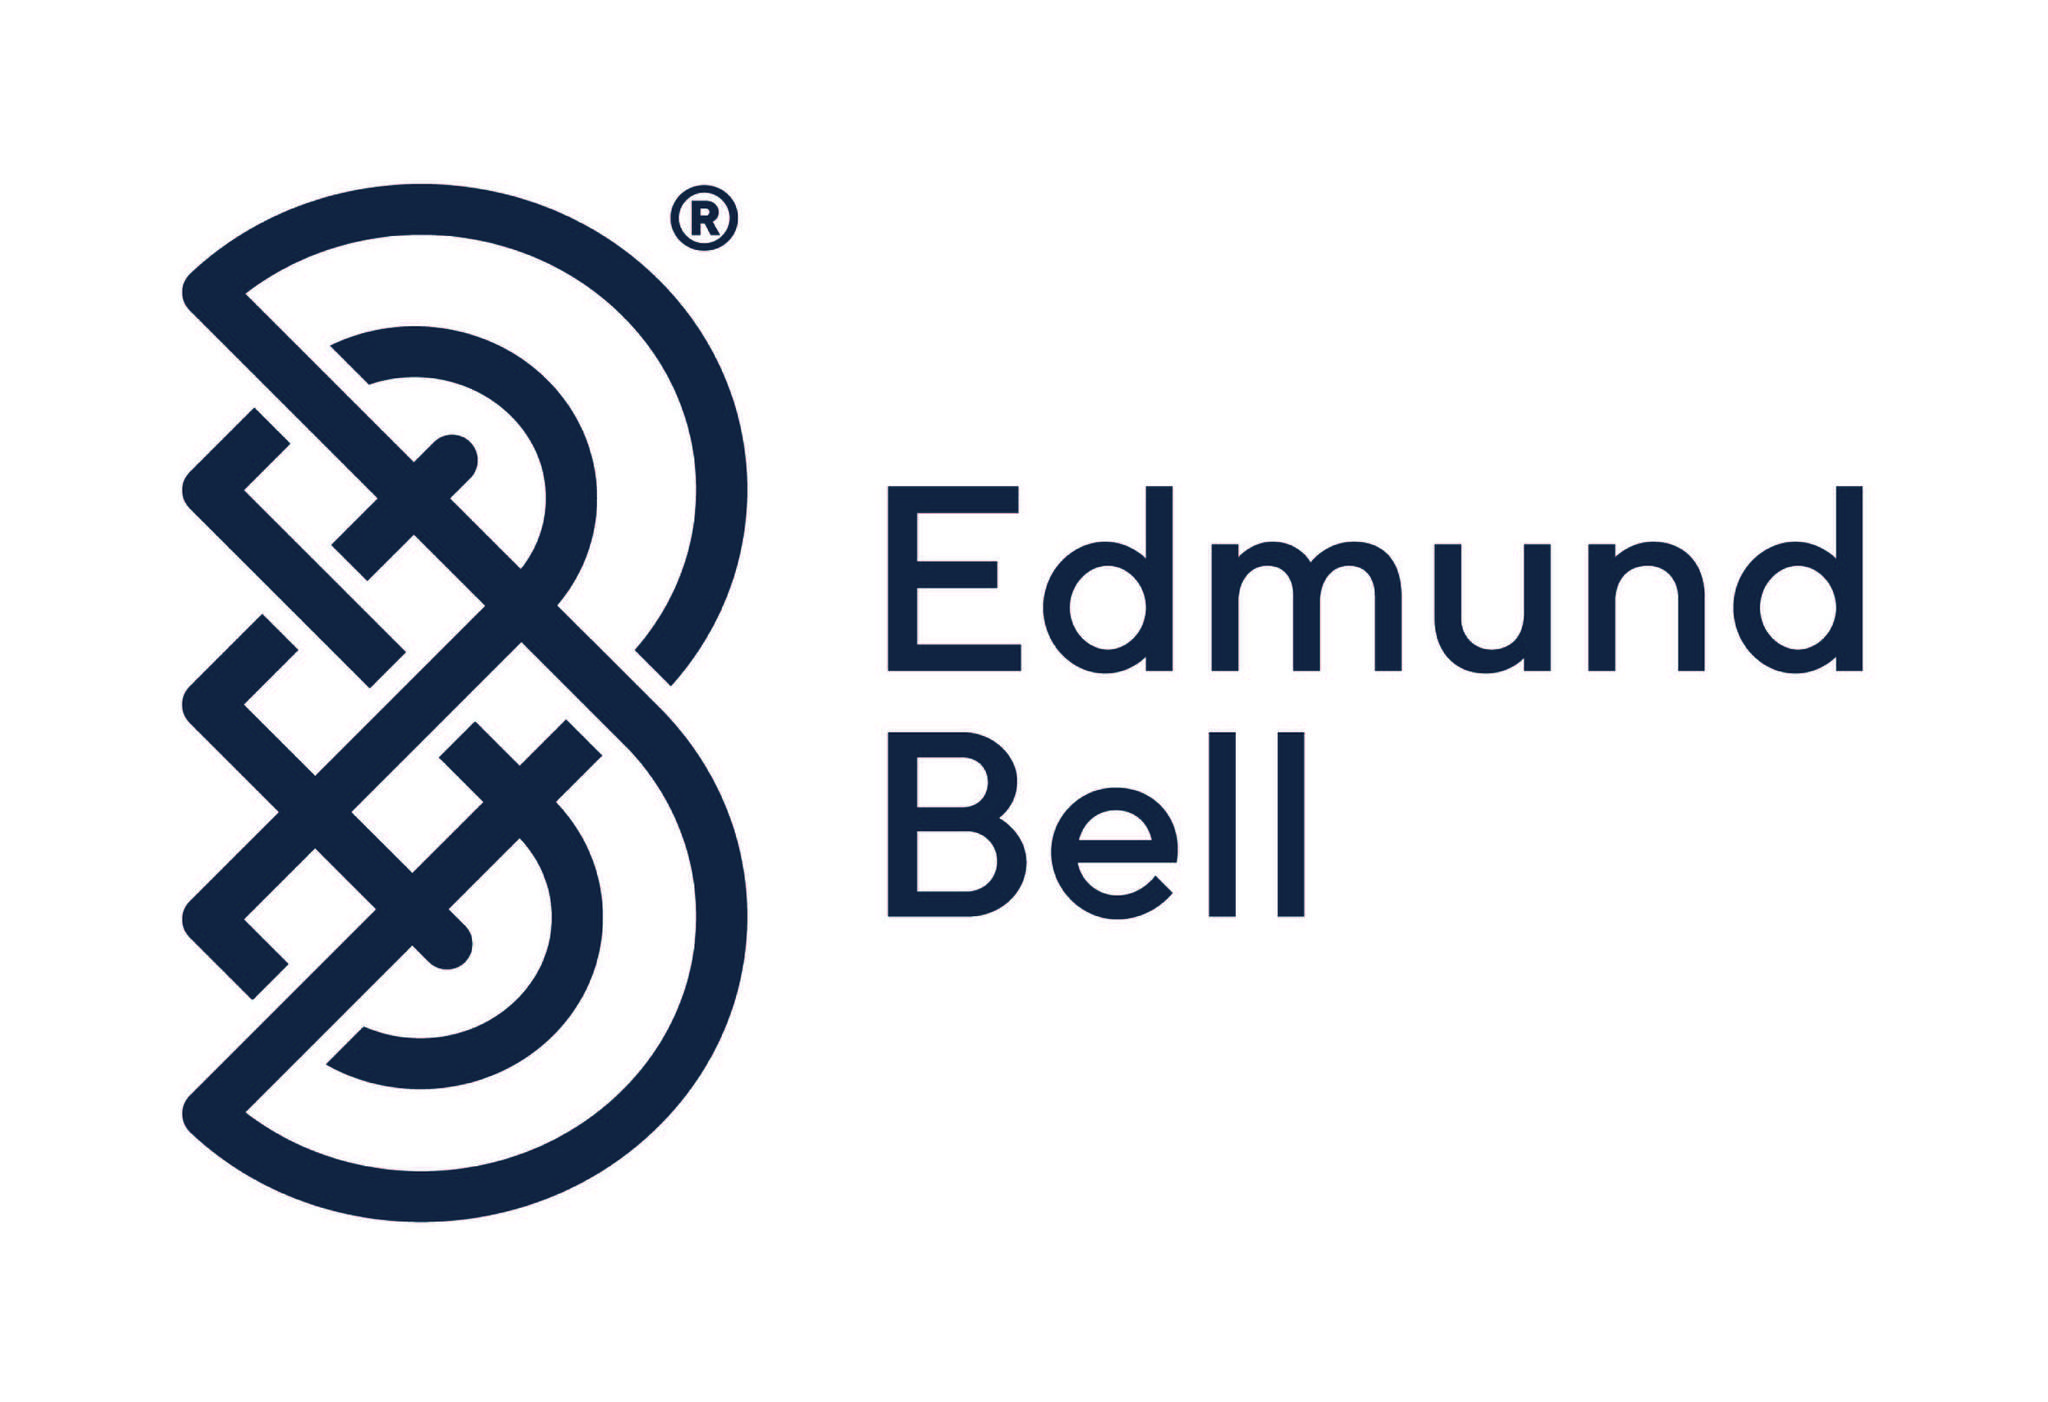 Edmund Bell & Co Ltd